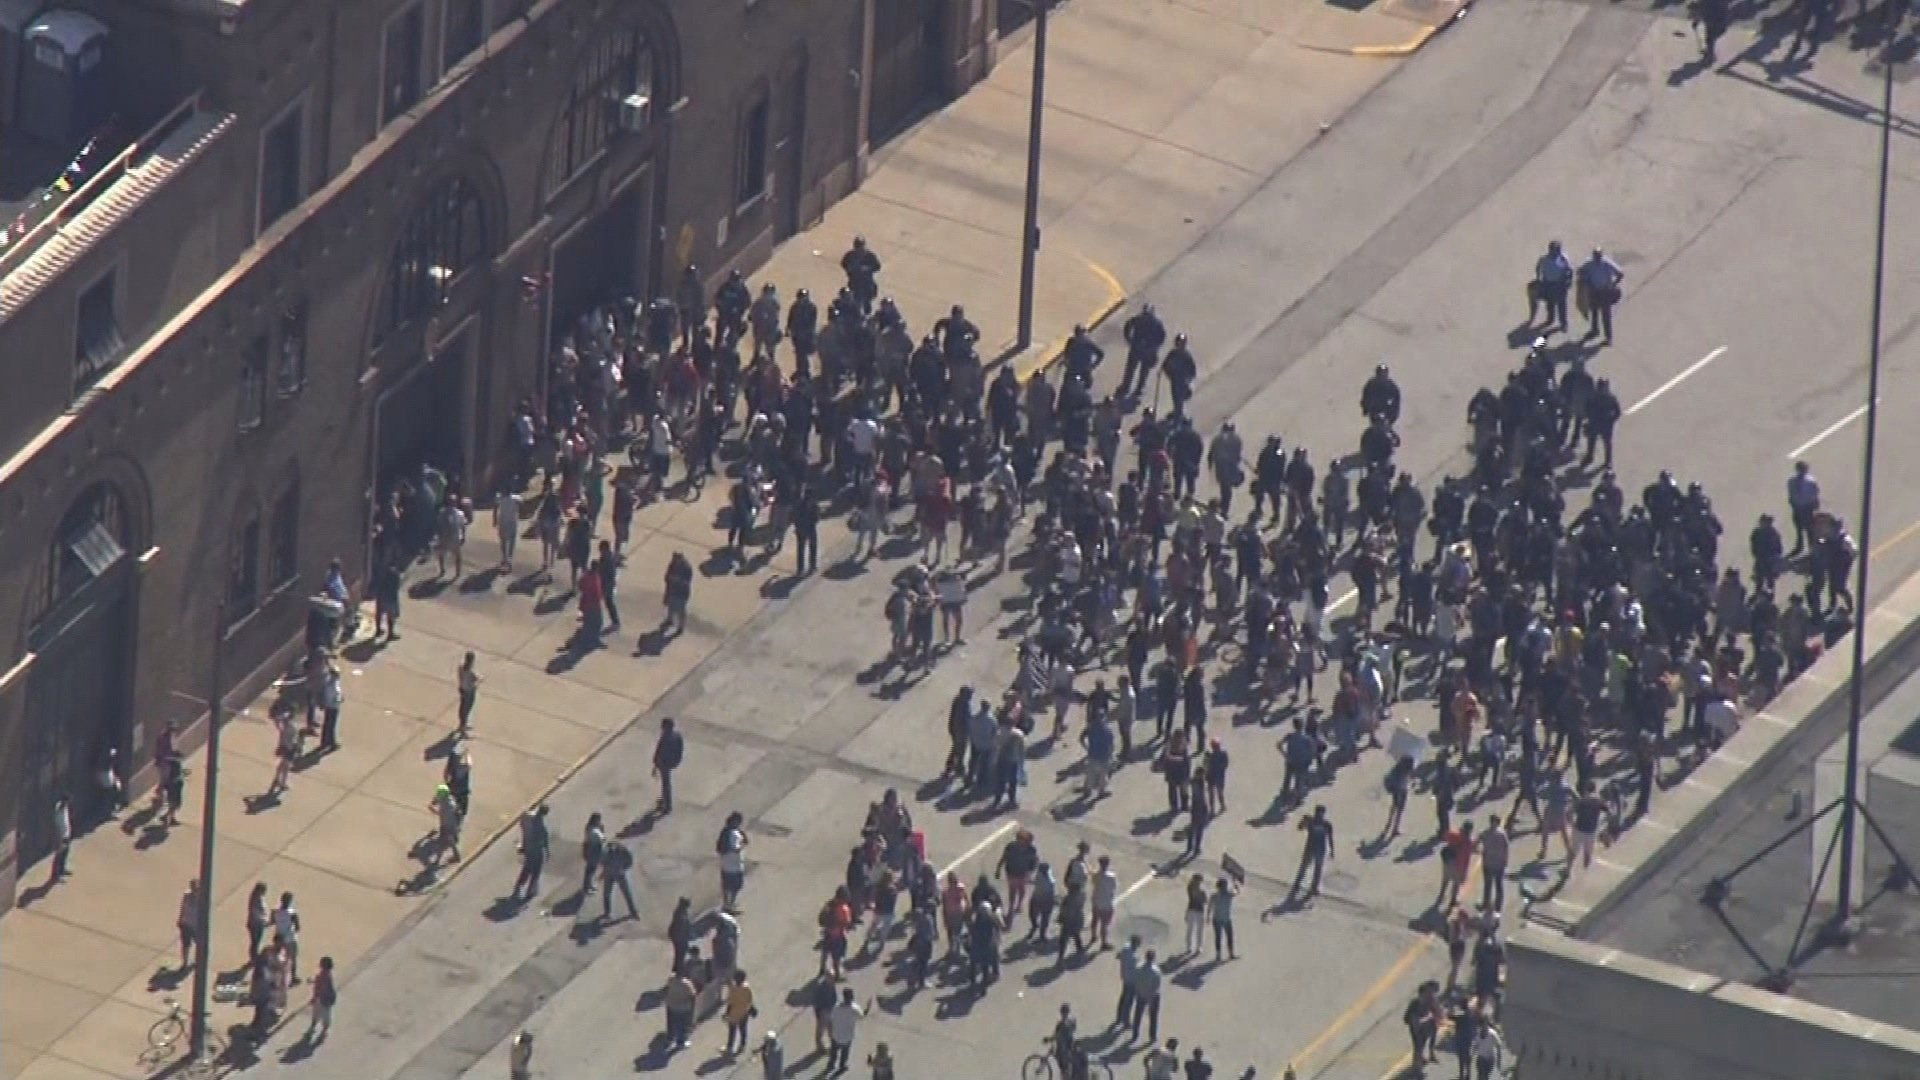 Crowds gathered in the Central West End Friday night to continue protesting the verdict in the Jason Stockley case. (KMOV)